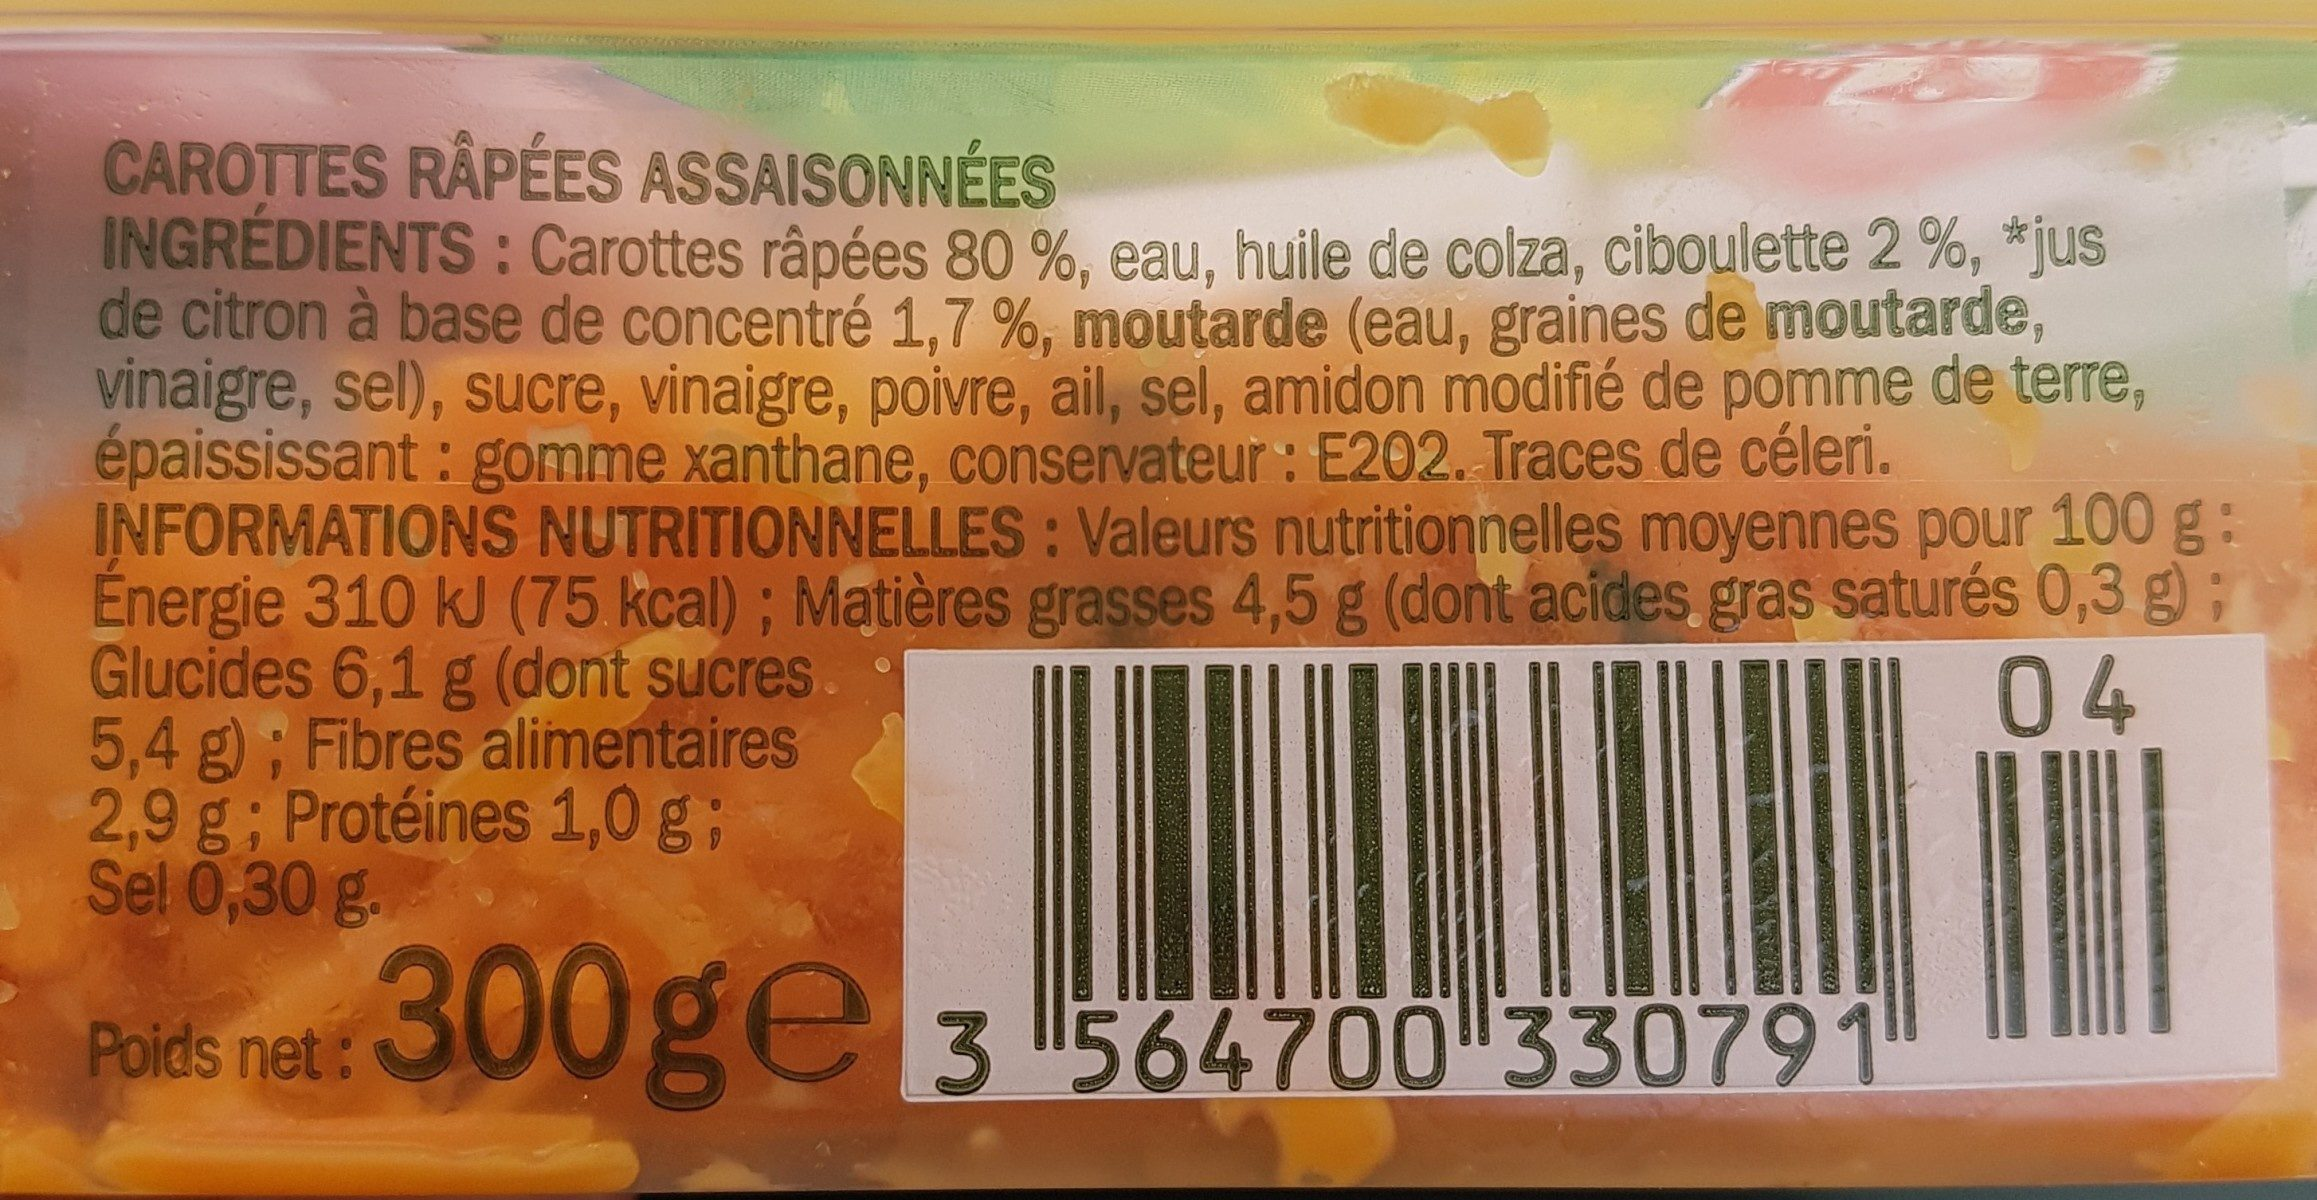 Salade carottes rapées - Ingredients - fr